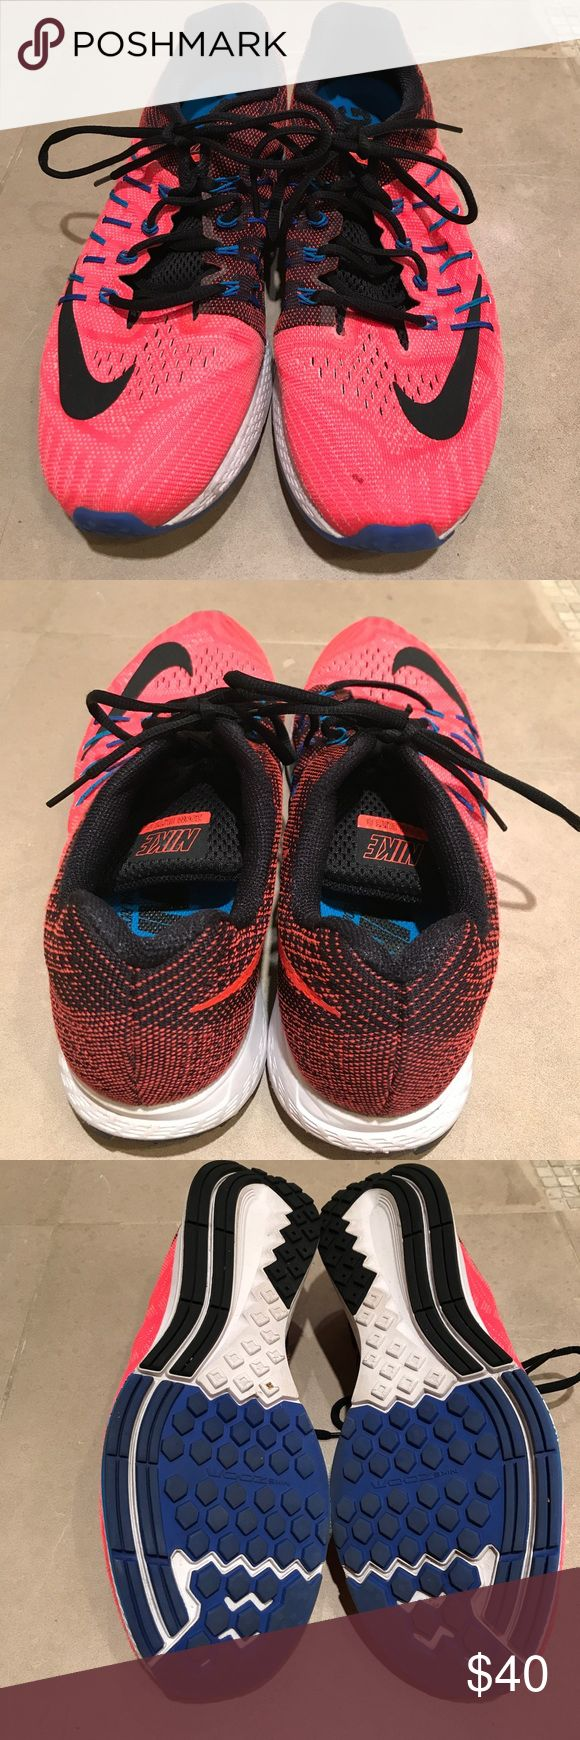 Men's Nike Zoom Elite 8 Neon orange black trim worn Nike Elite 8. Notice small stain ( see in photo) near roe of left shoe. Inside of shoe in very good condition.. Nike Shoes Sneakers